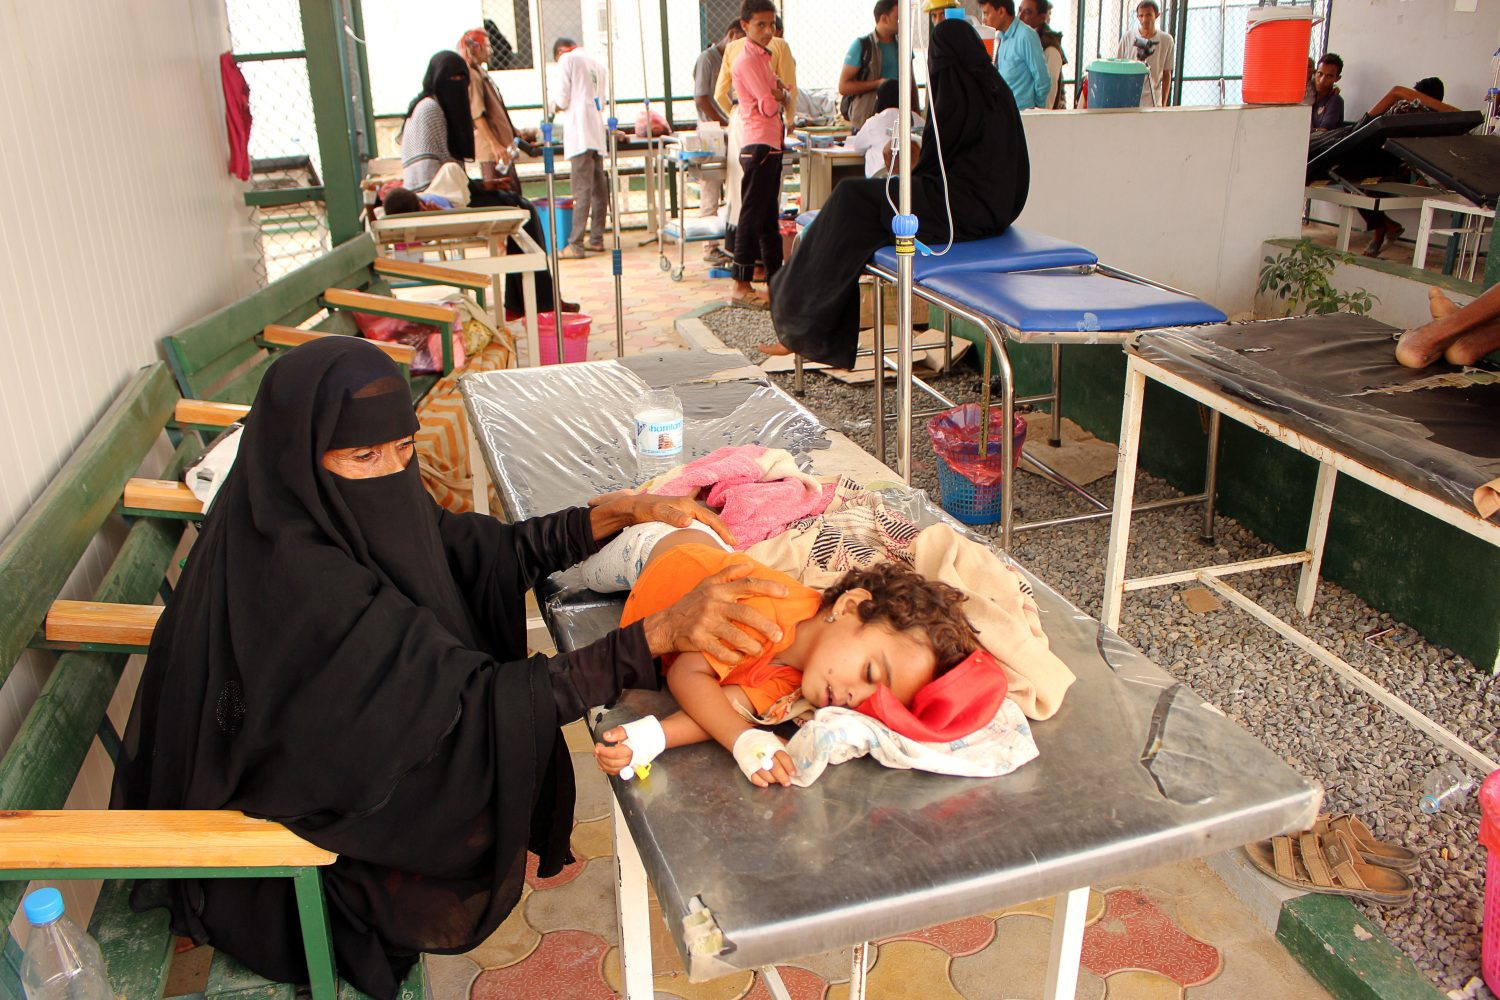 A girl, cholera patient, lies on a bed as she receives medical care at a health center in the village of Islim, in the northwestern province of Hajjah, Yemen June 4, 2019. REUTERS/Eissa Alrage